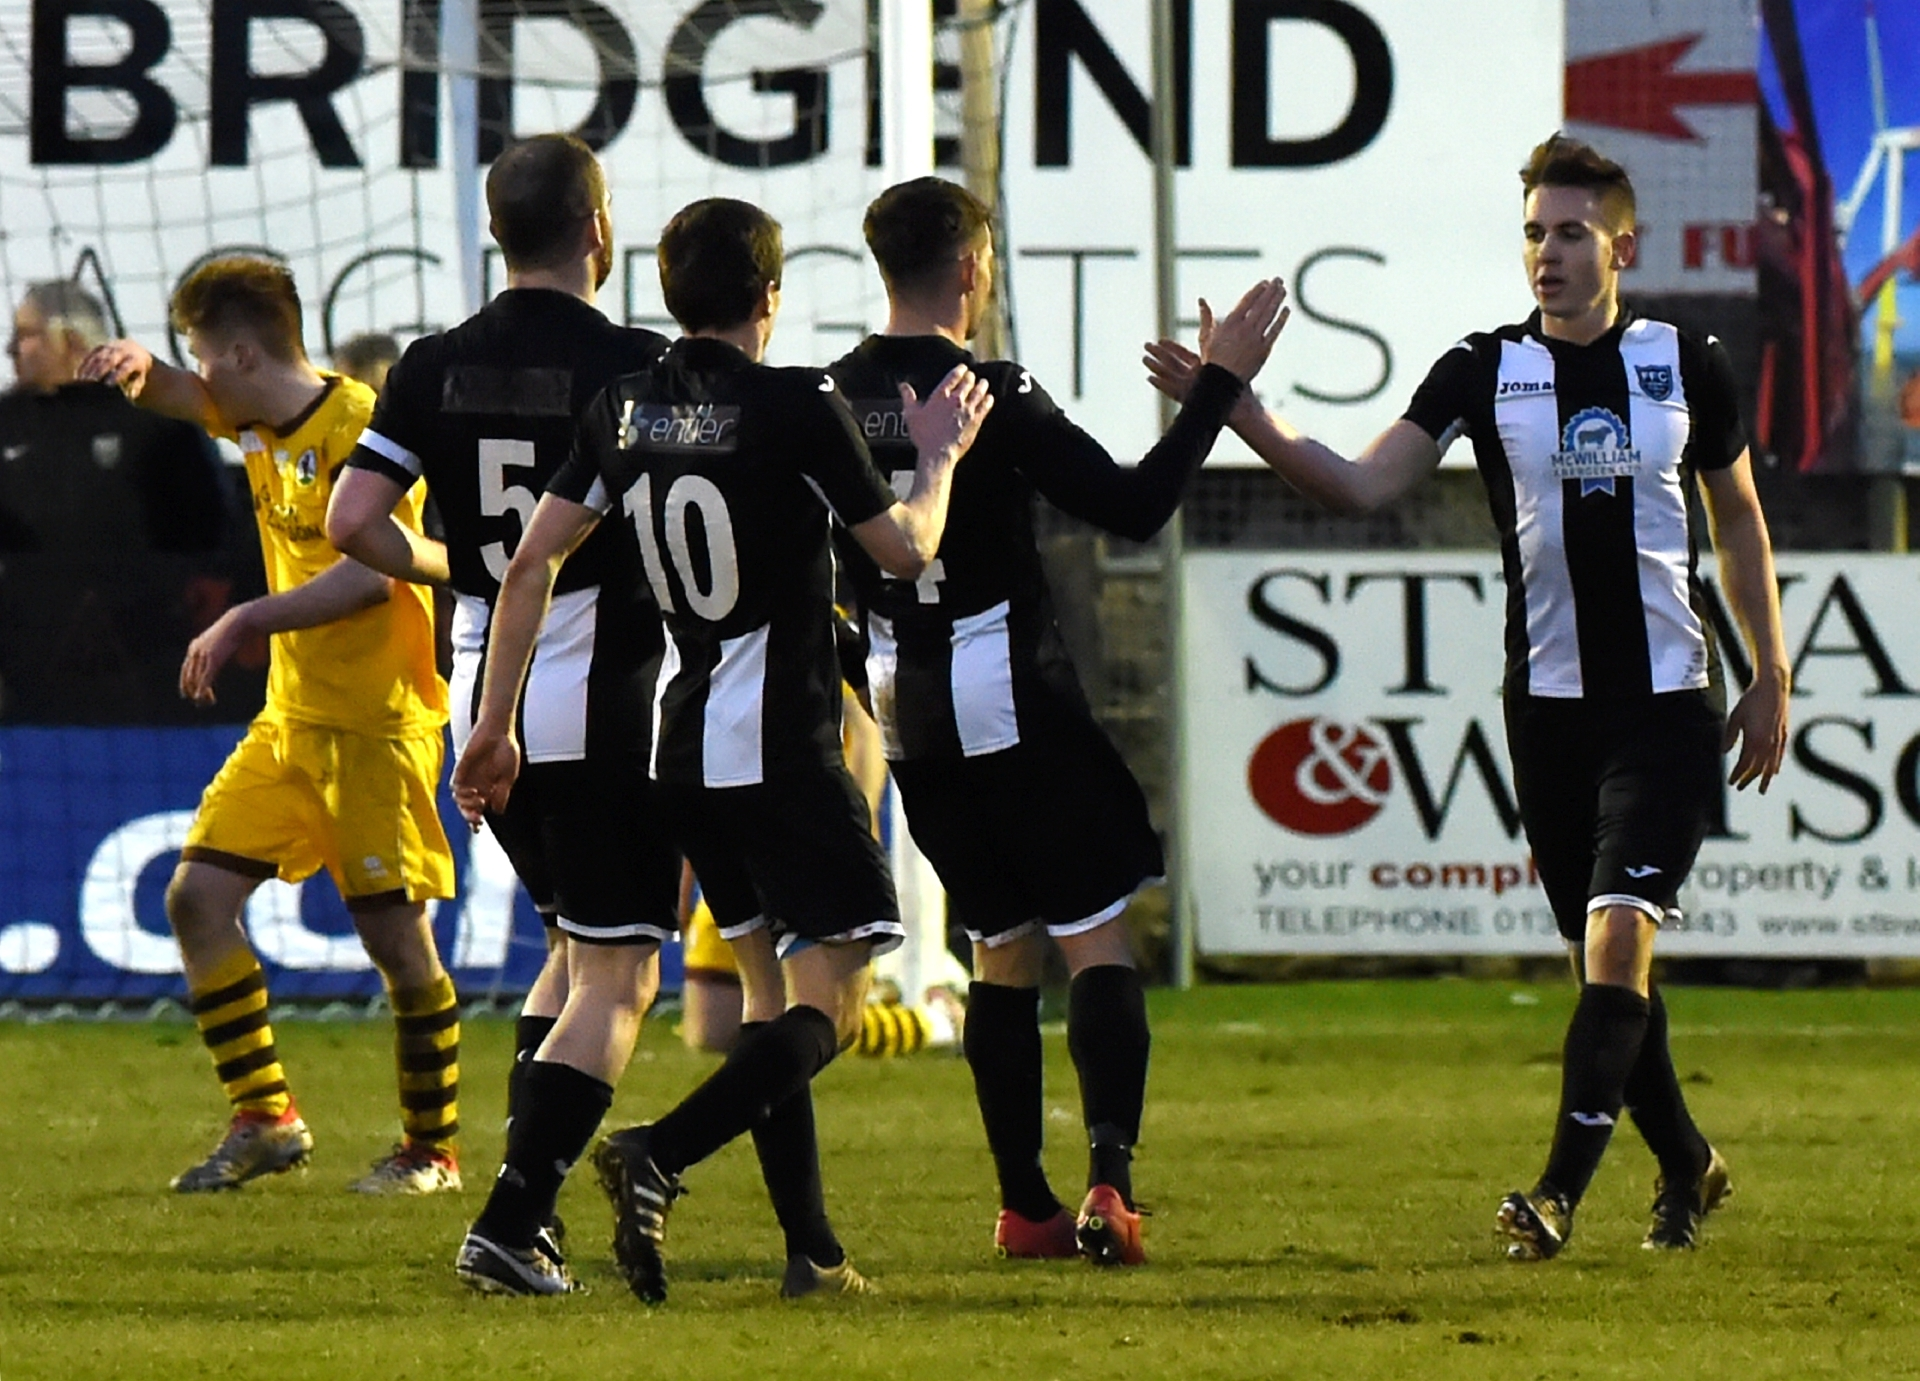 Paul Campbell celebrating with team mates after scoring to make it 5-1. Pictures by Kenny Elrick